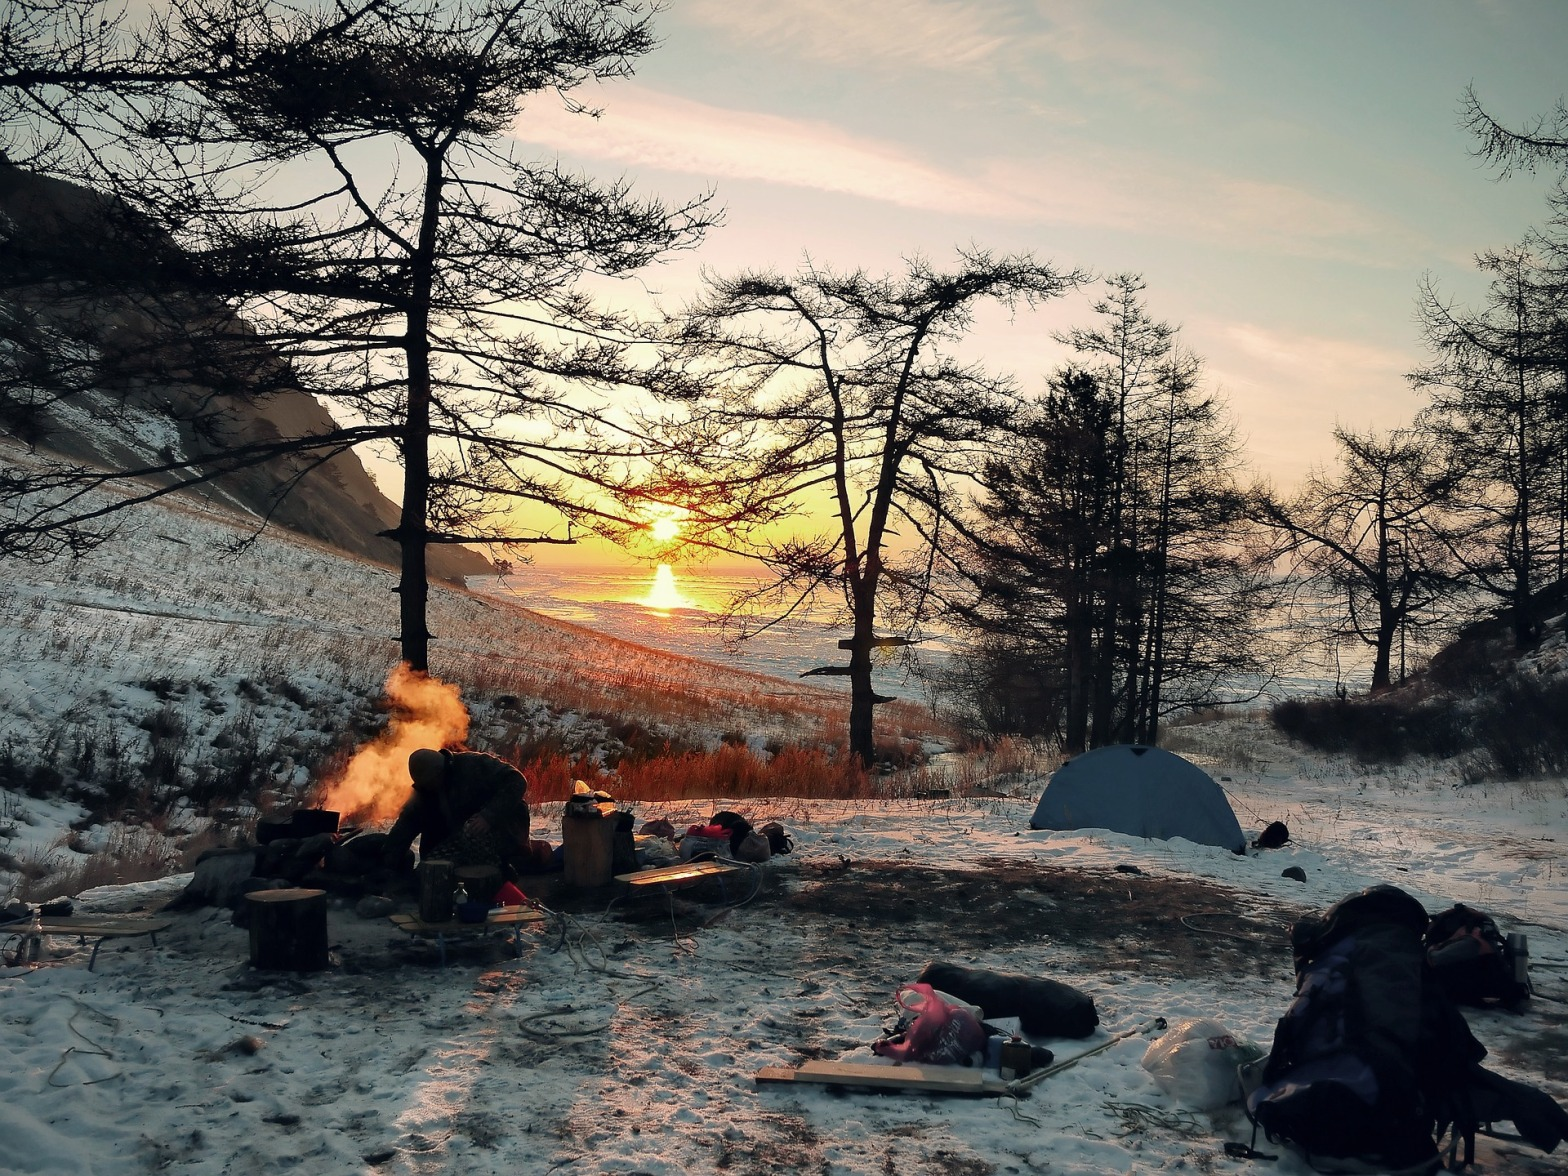 https://pixabay.com/en/wintry-camping-adventure-outdoor-2065342/